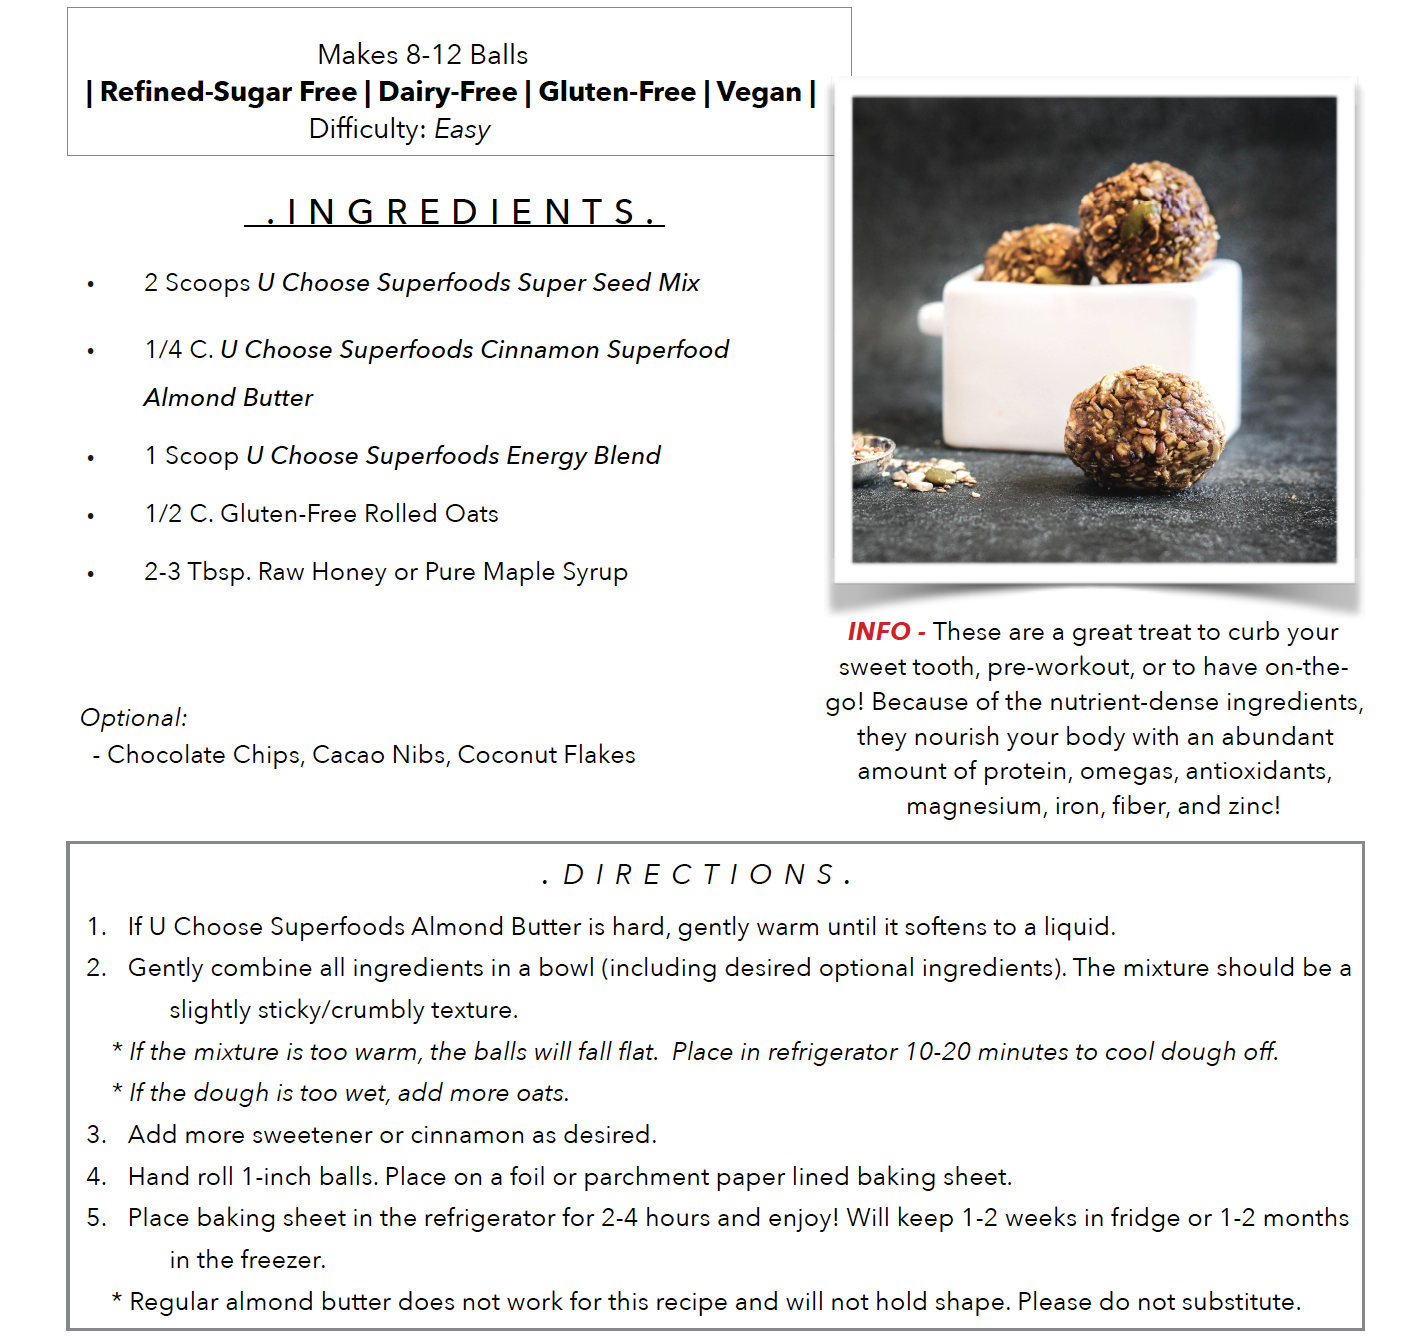 No-Bake Cinnamon Superfood Almond Butter Energy Balls - Keto, Paleo, Gluten-free, sugar-free, plant based, dairy-free, soy-free, healthy and easy recipe